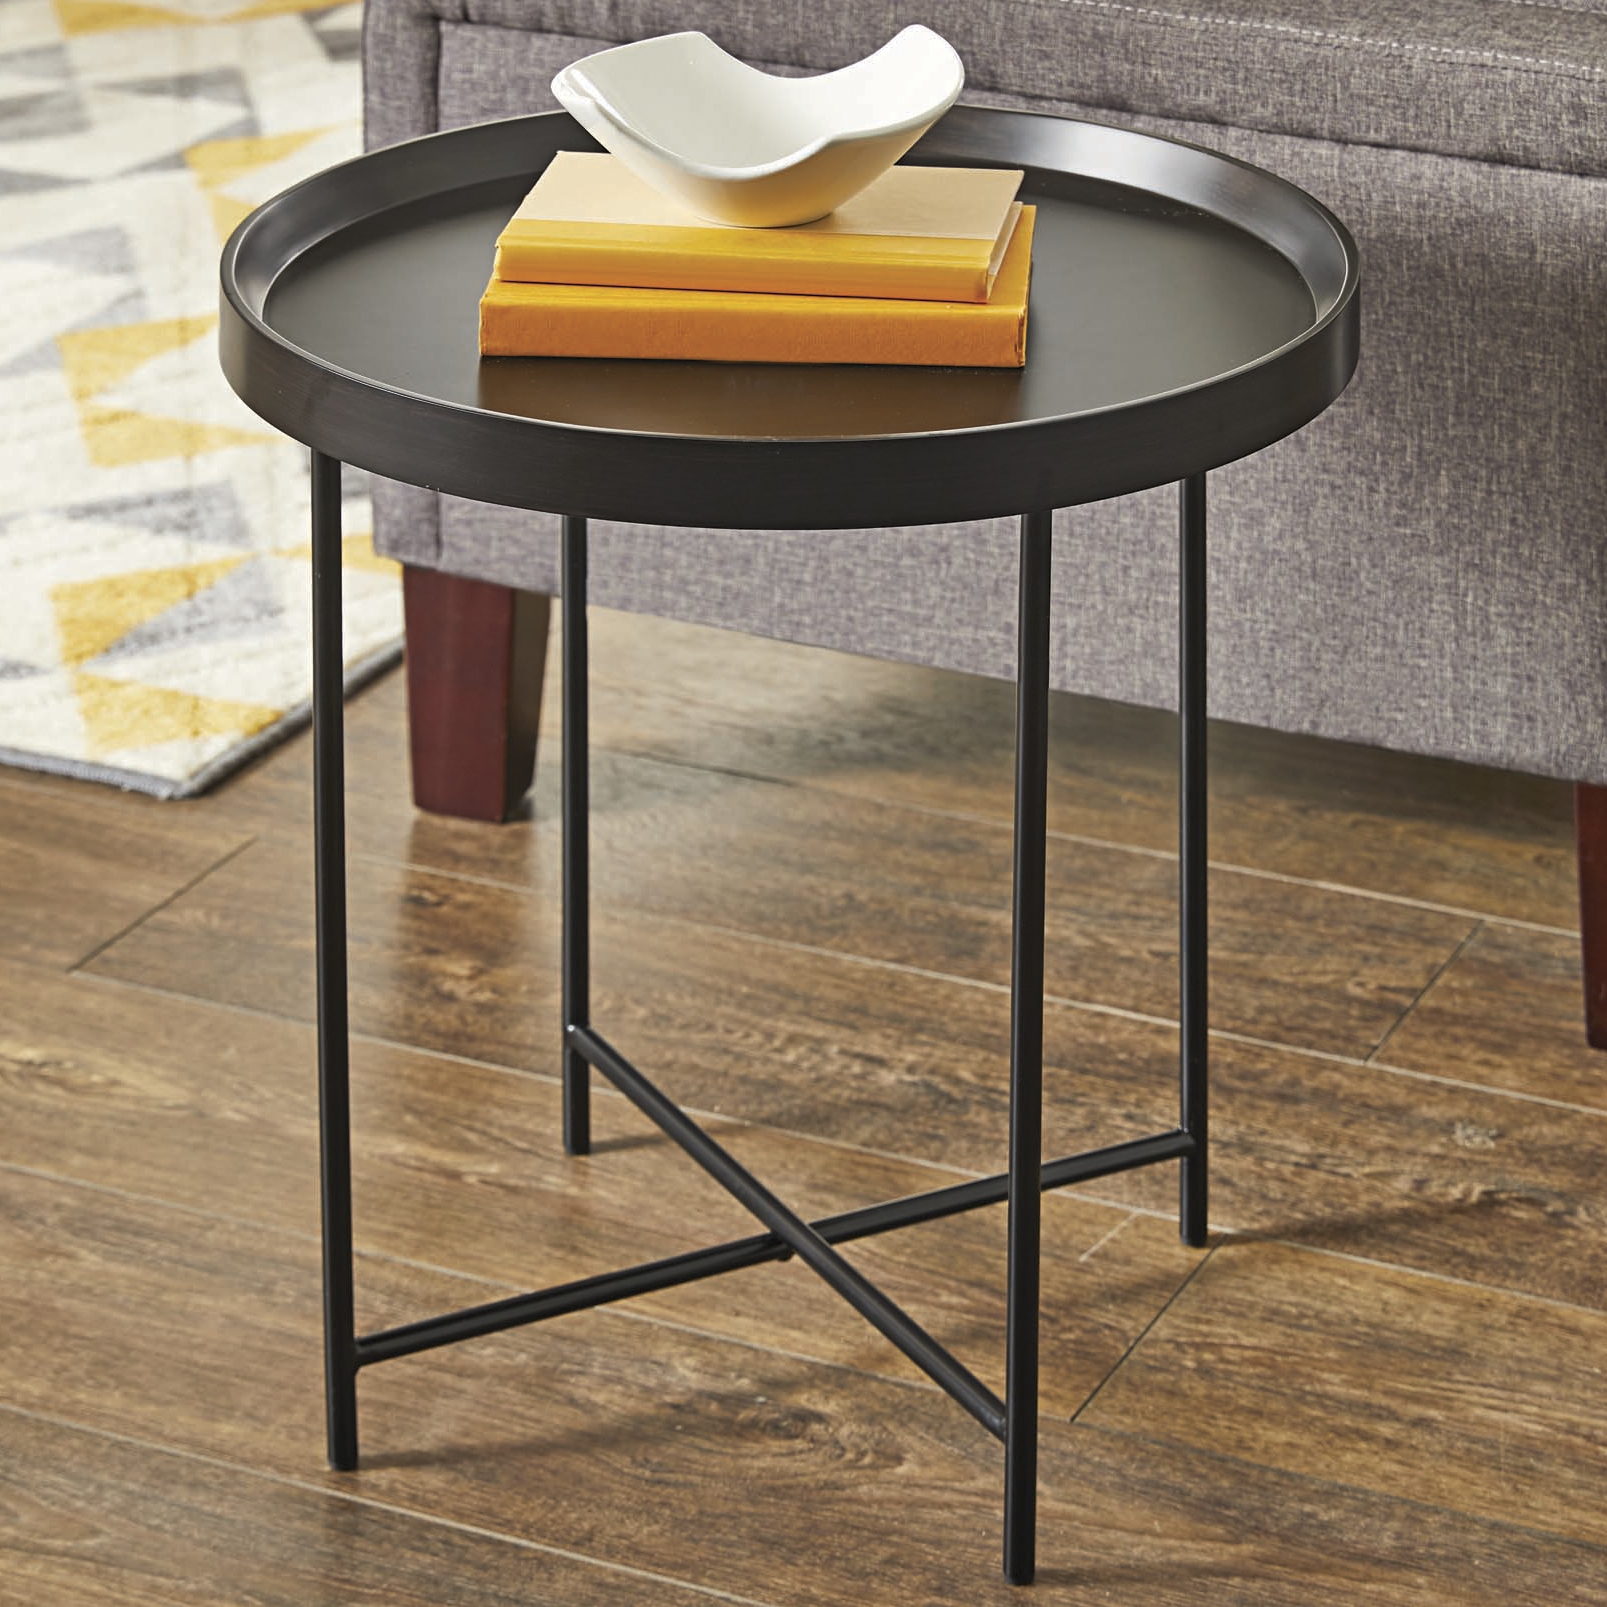 round accent table bedside small modern tray top metal night stand black finish gold mirrored furniture tall white folding patio pier one chairs cabinet legs kitchen lighthouse